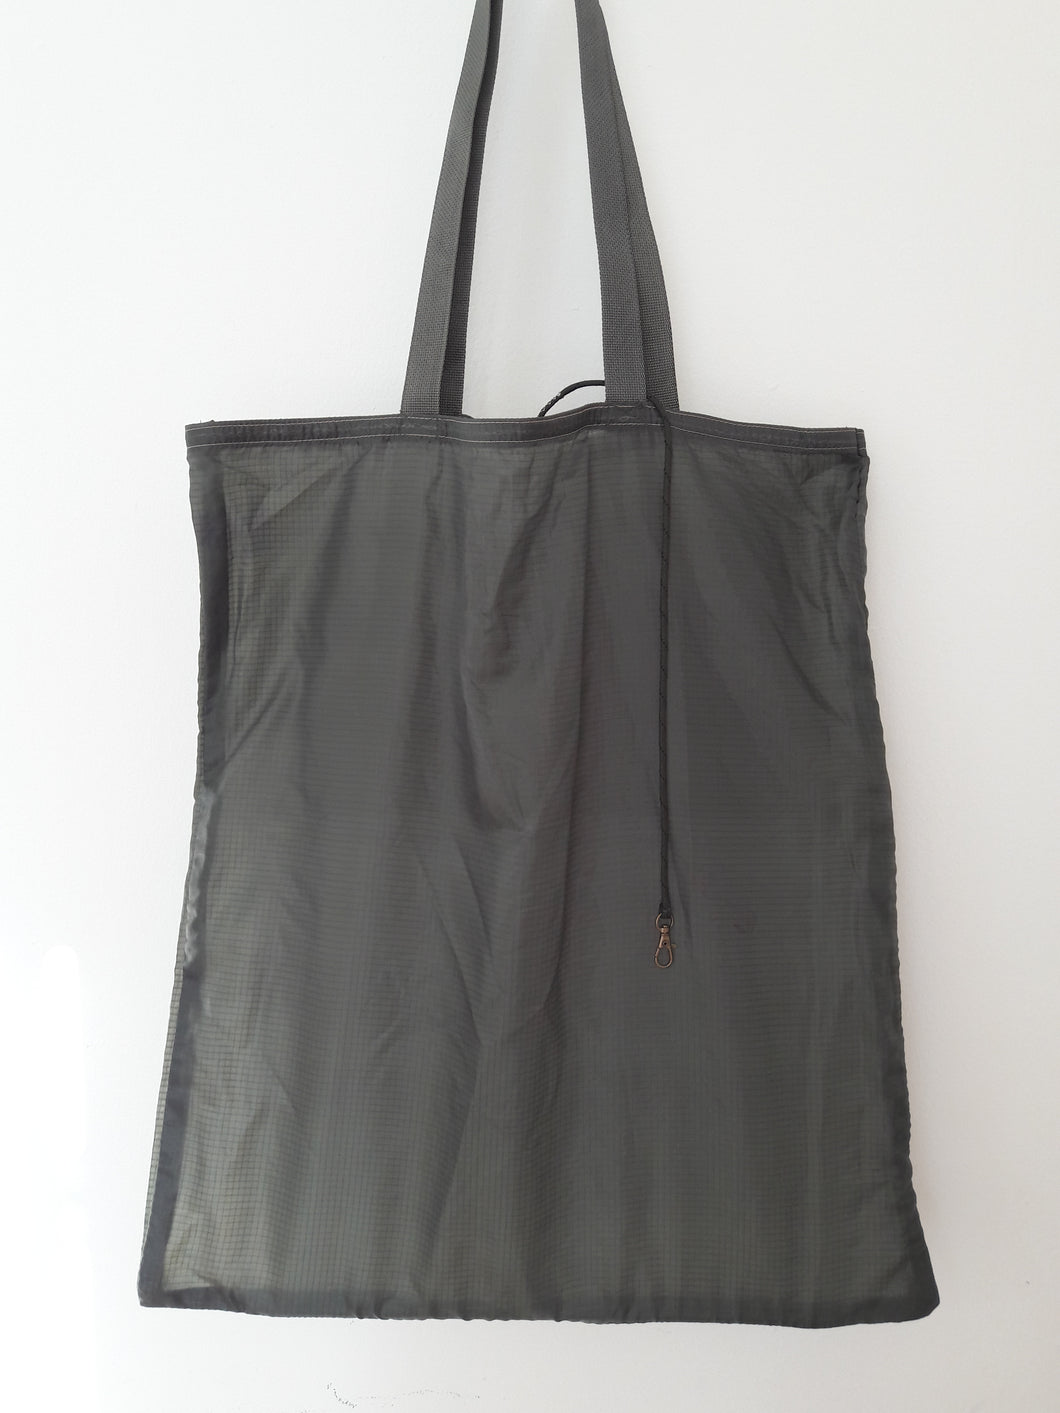 Totebag Recycled Parachute